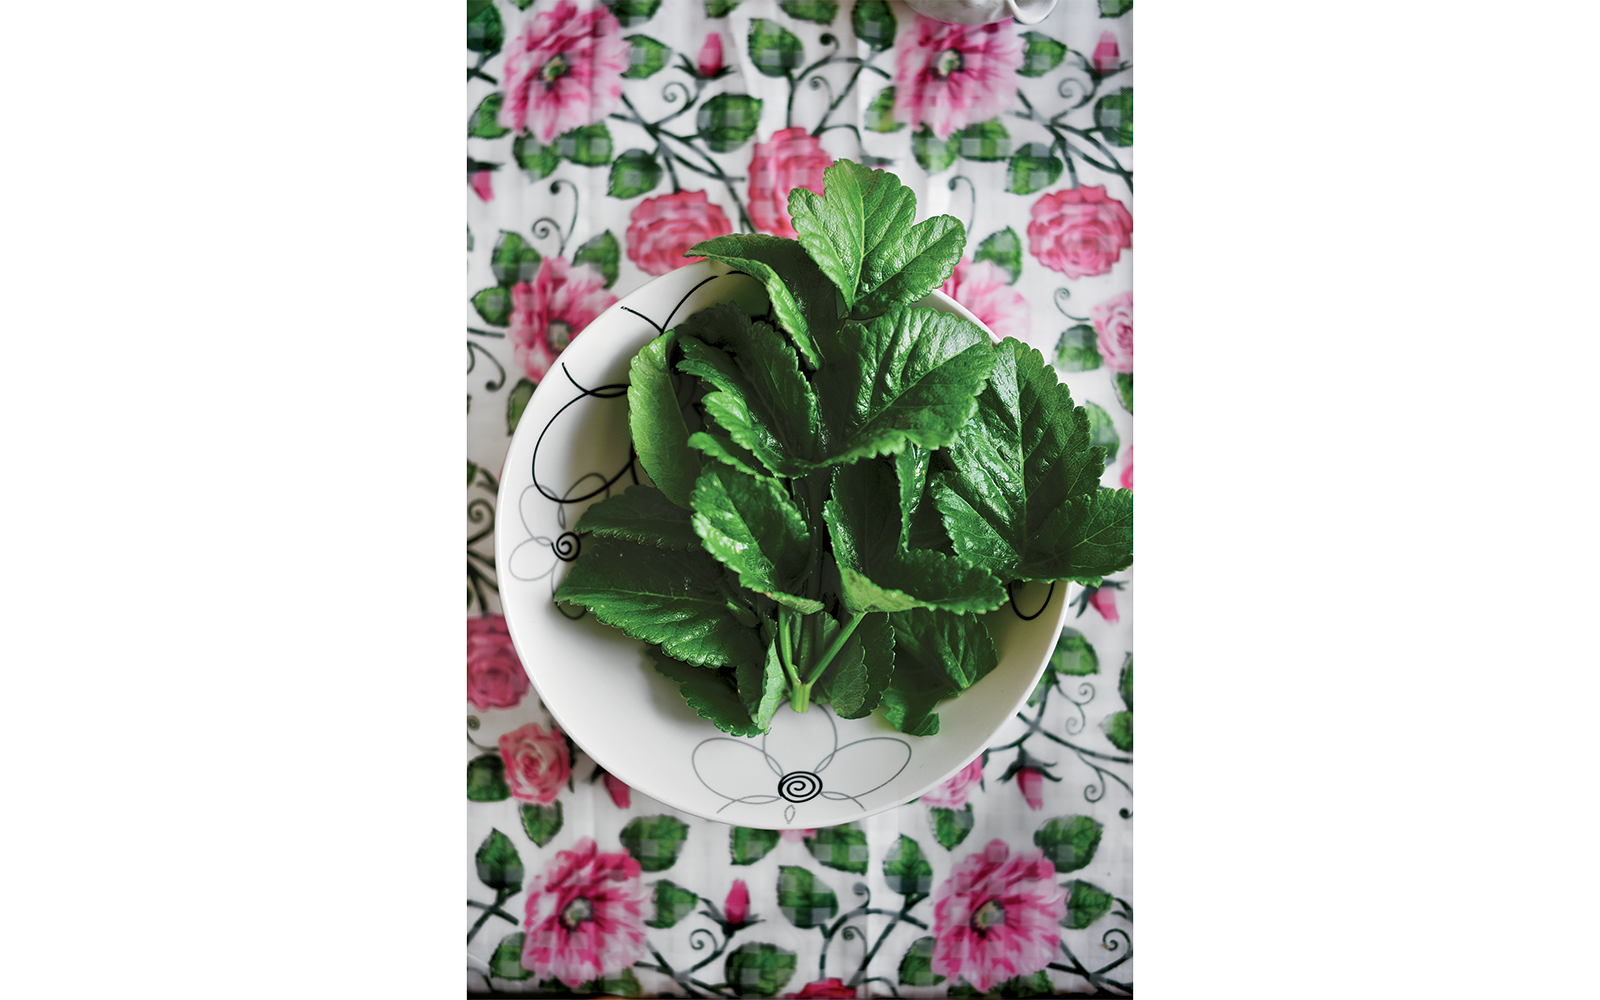 Food in Greenland: Angelica leaves